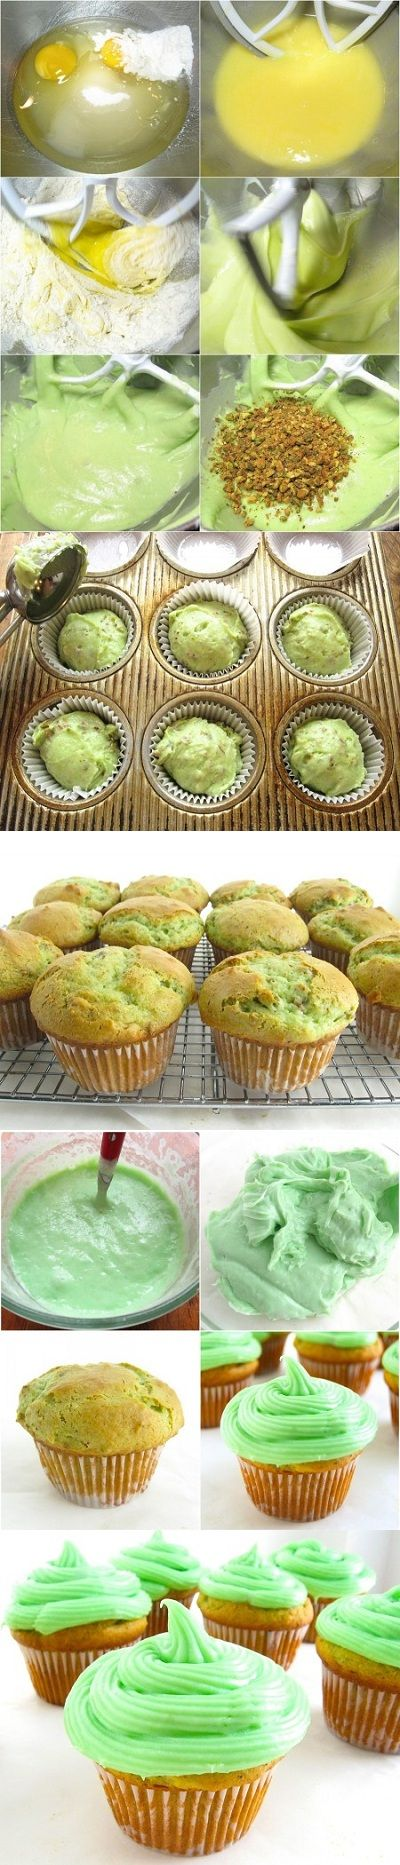 Pistachio Cupcakes-these look delicious!!!! I'd eat them just for the way they look! #cupcakes @shannaminish89 @jcweddell713